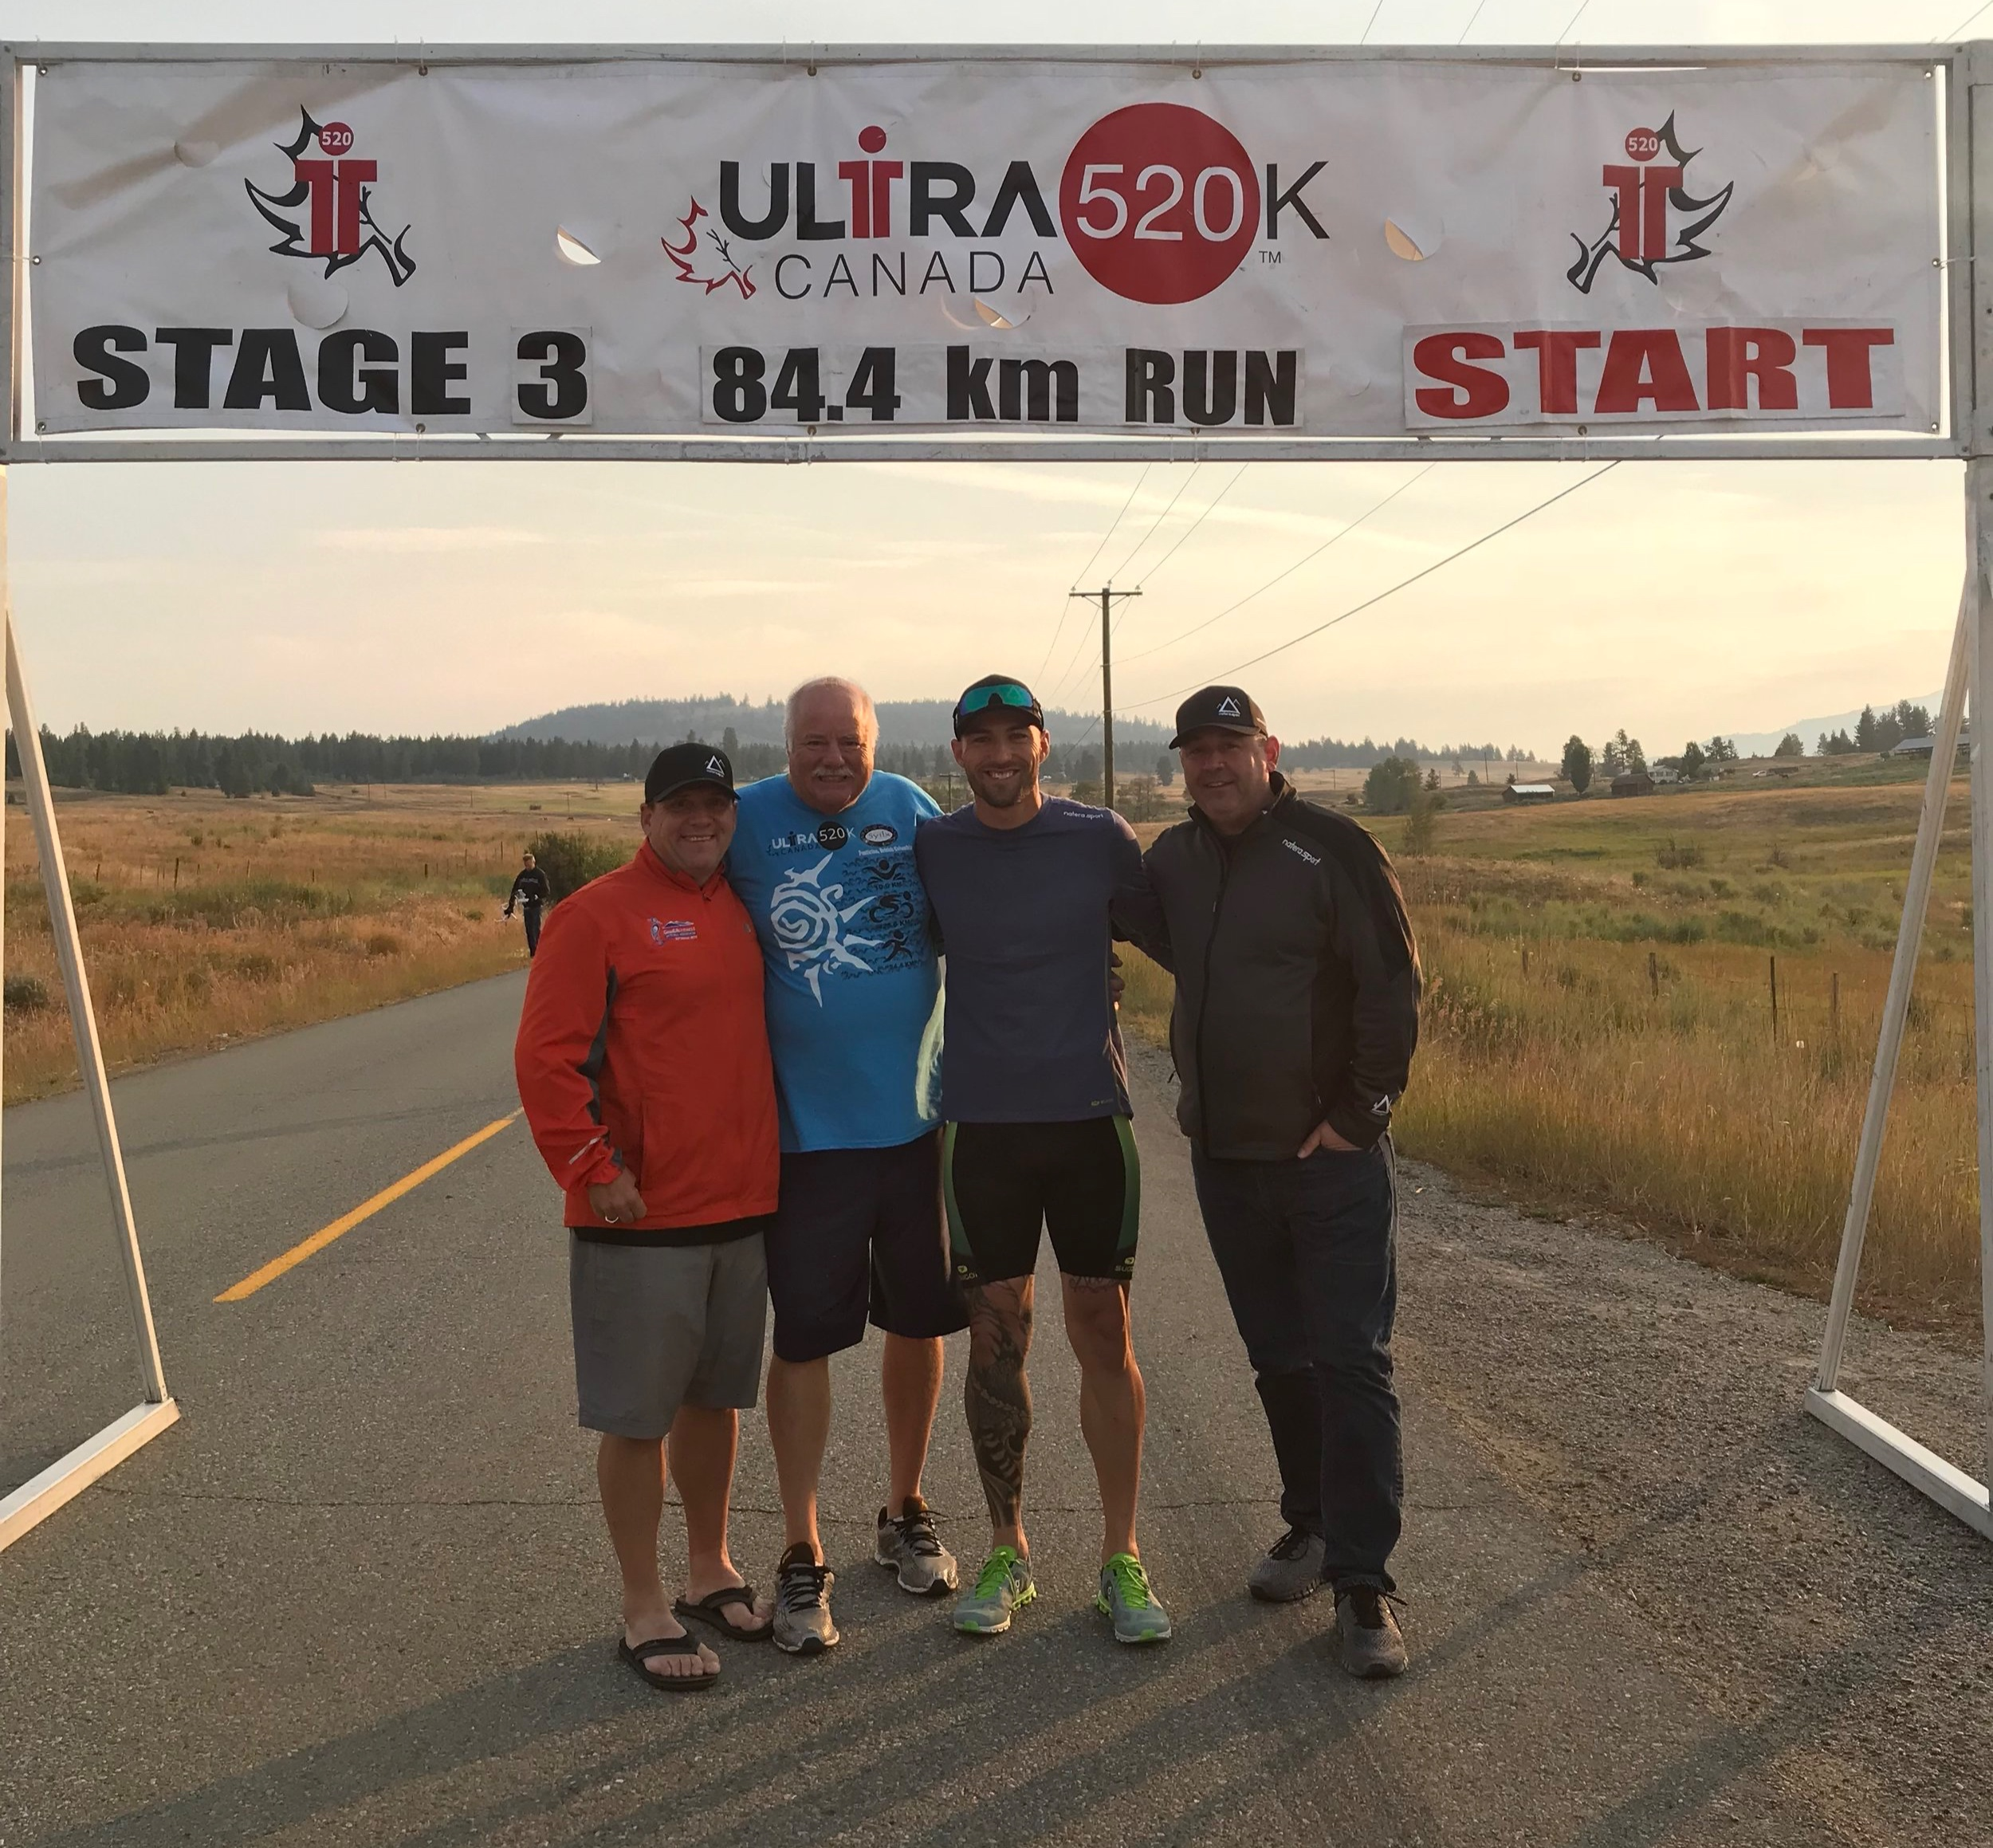 Start of the double marathon from Princeton to Summerland.